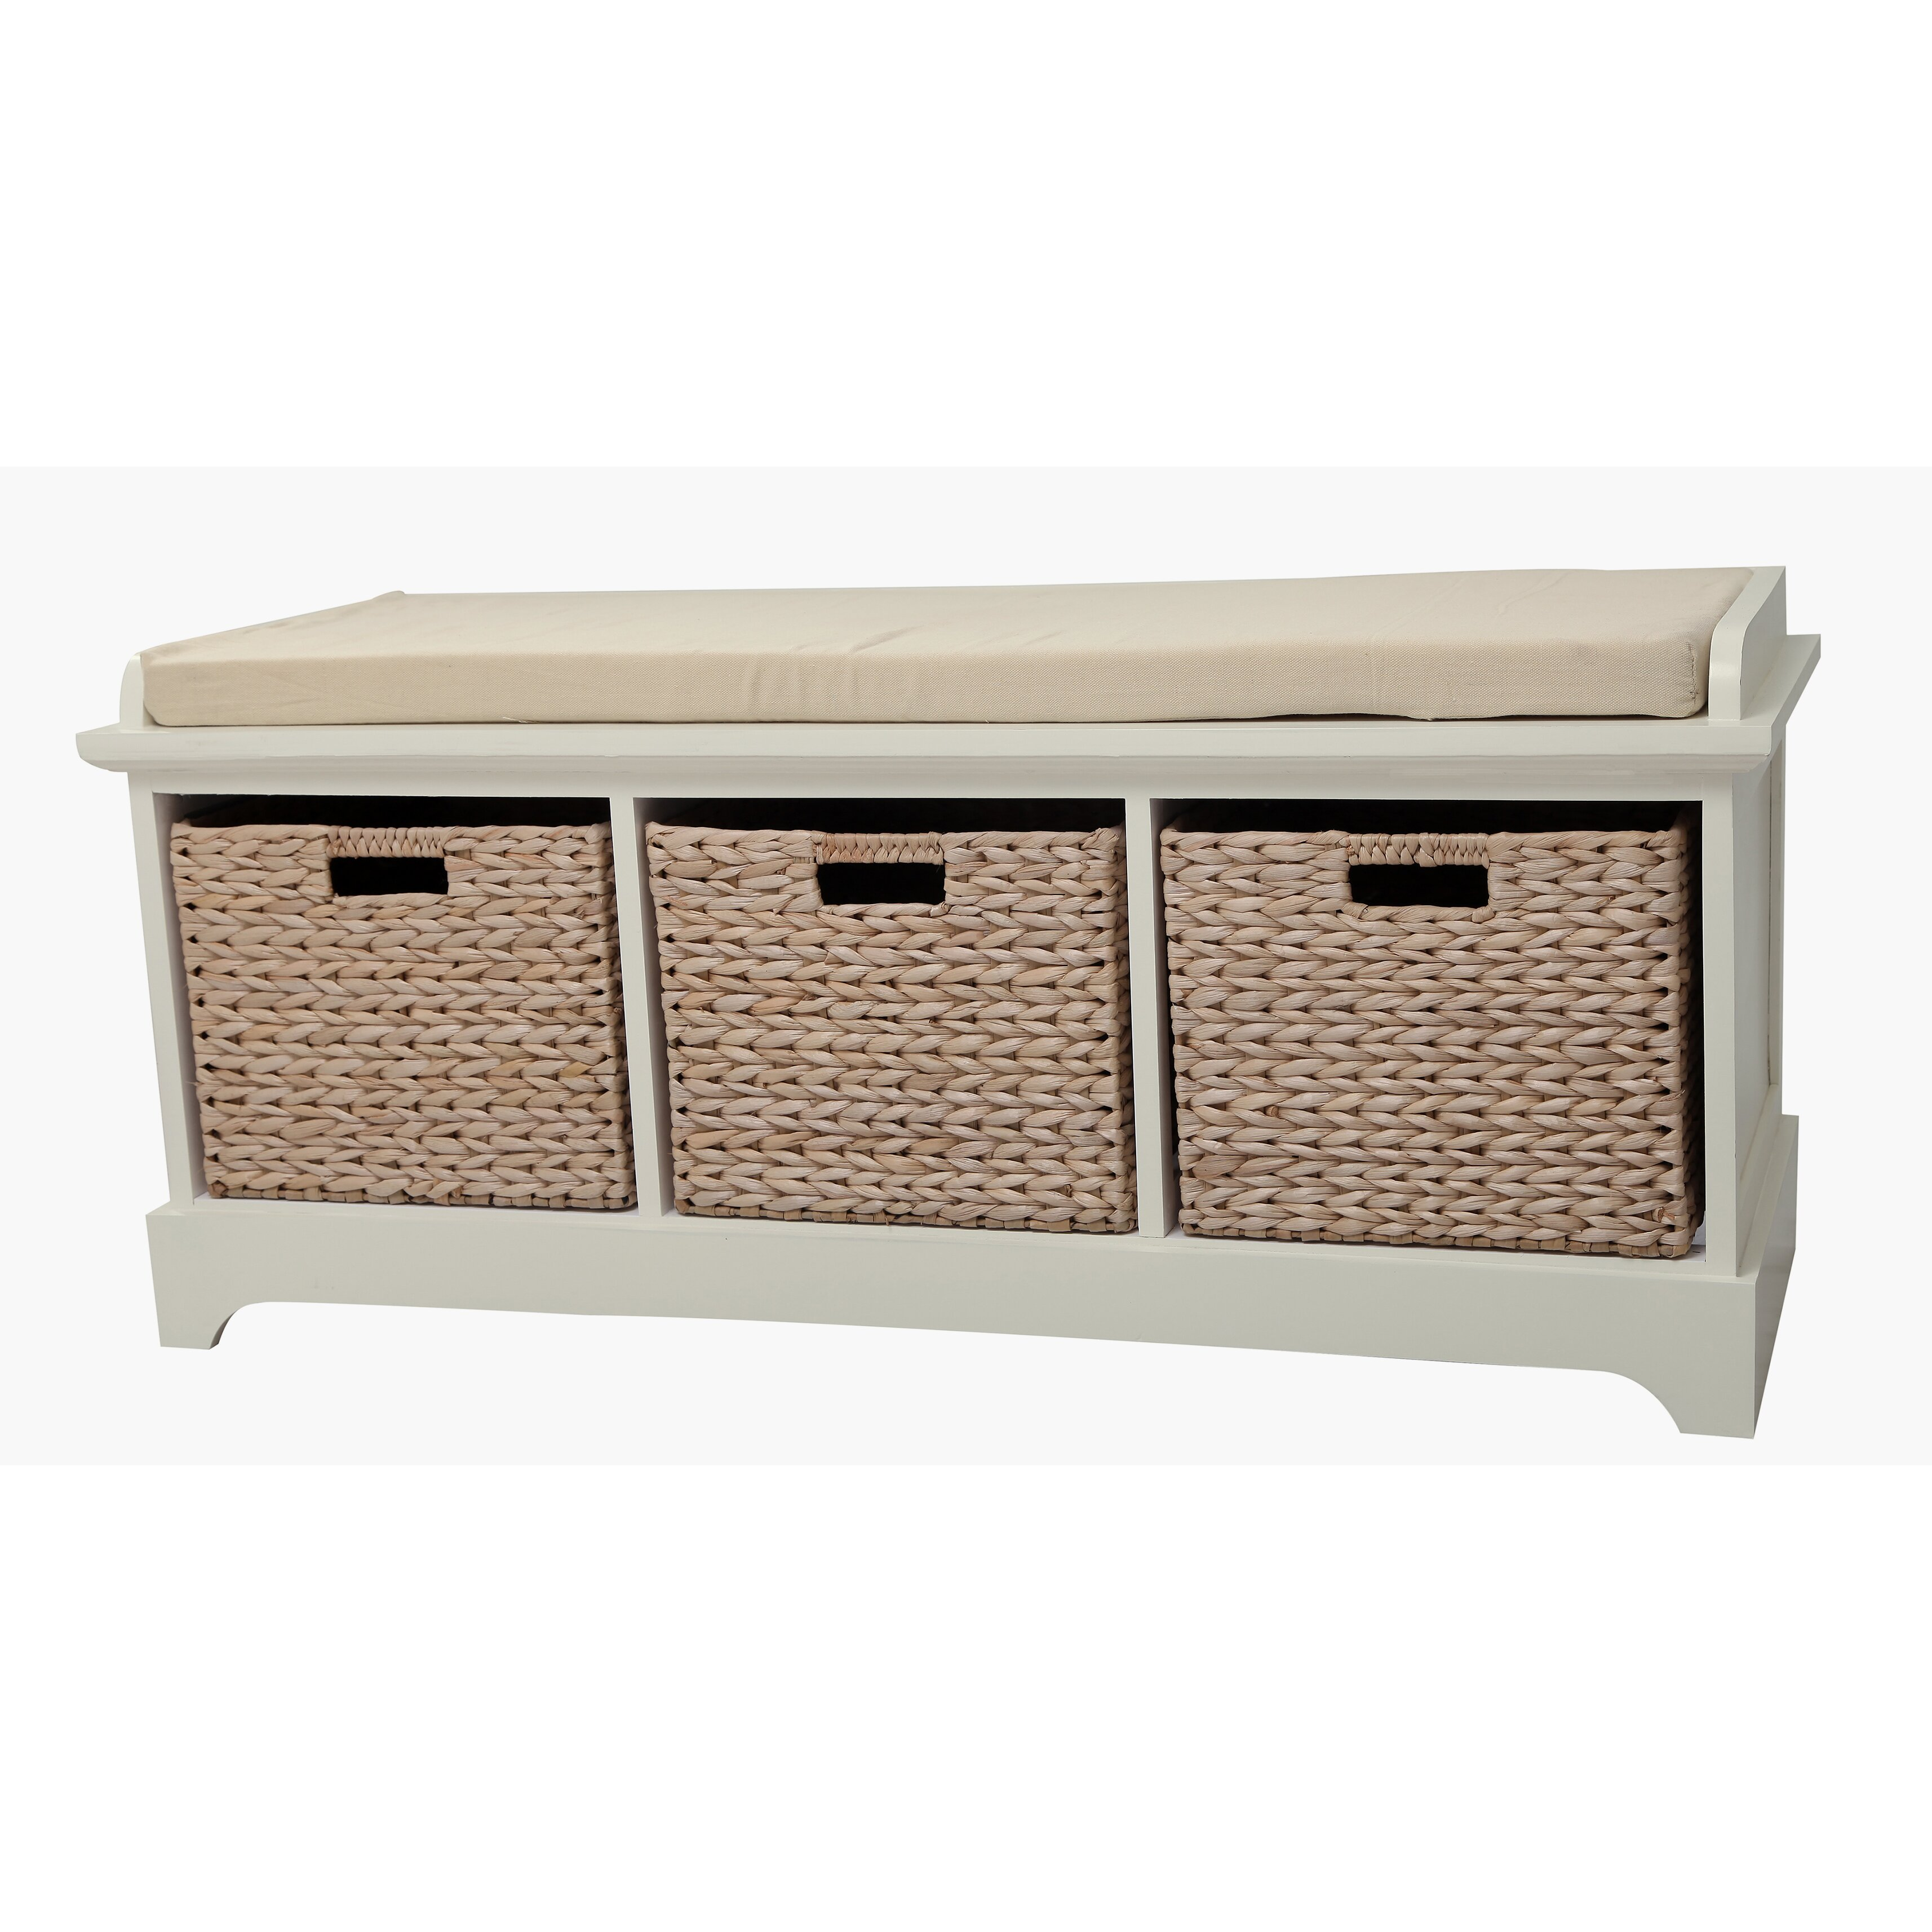 Gallerie Decor Newport Wooden Bedroom Storage Bench With 3